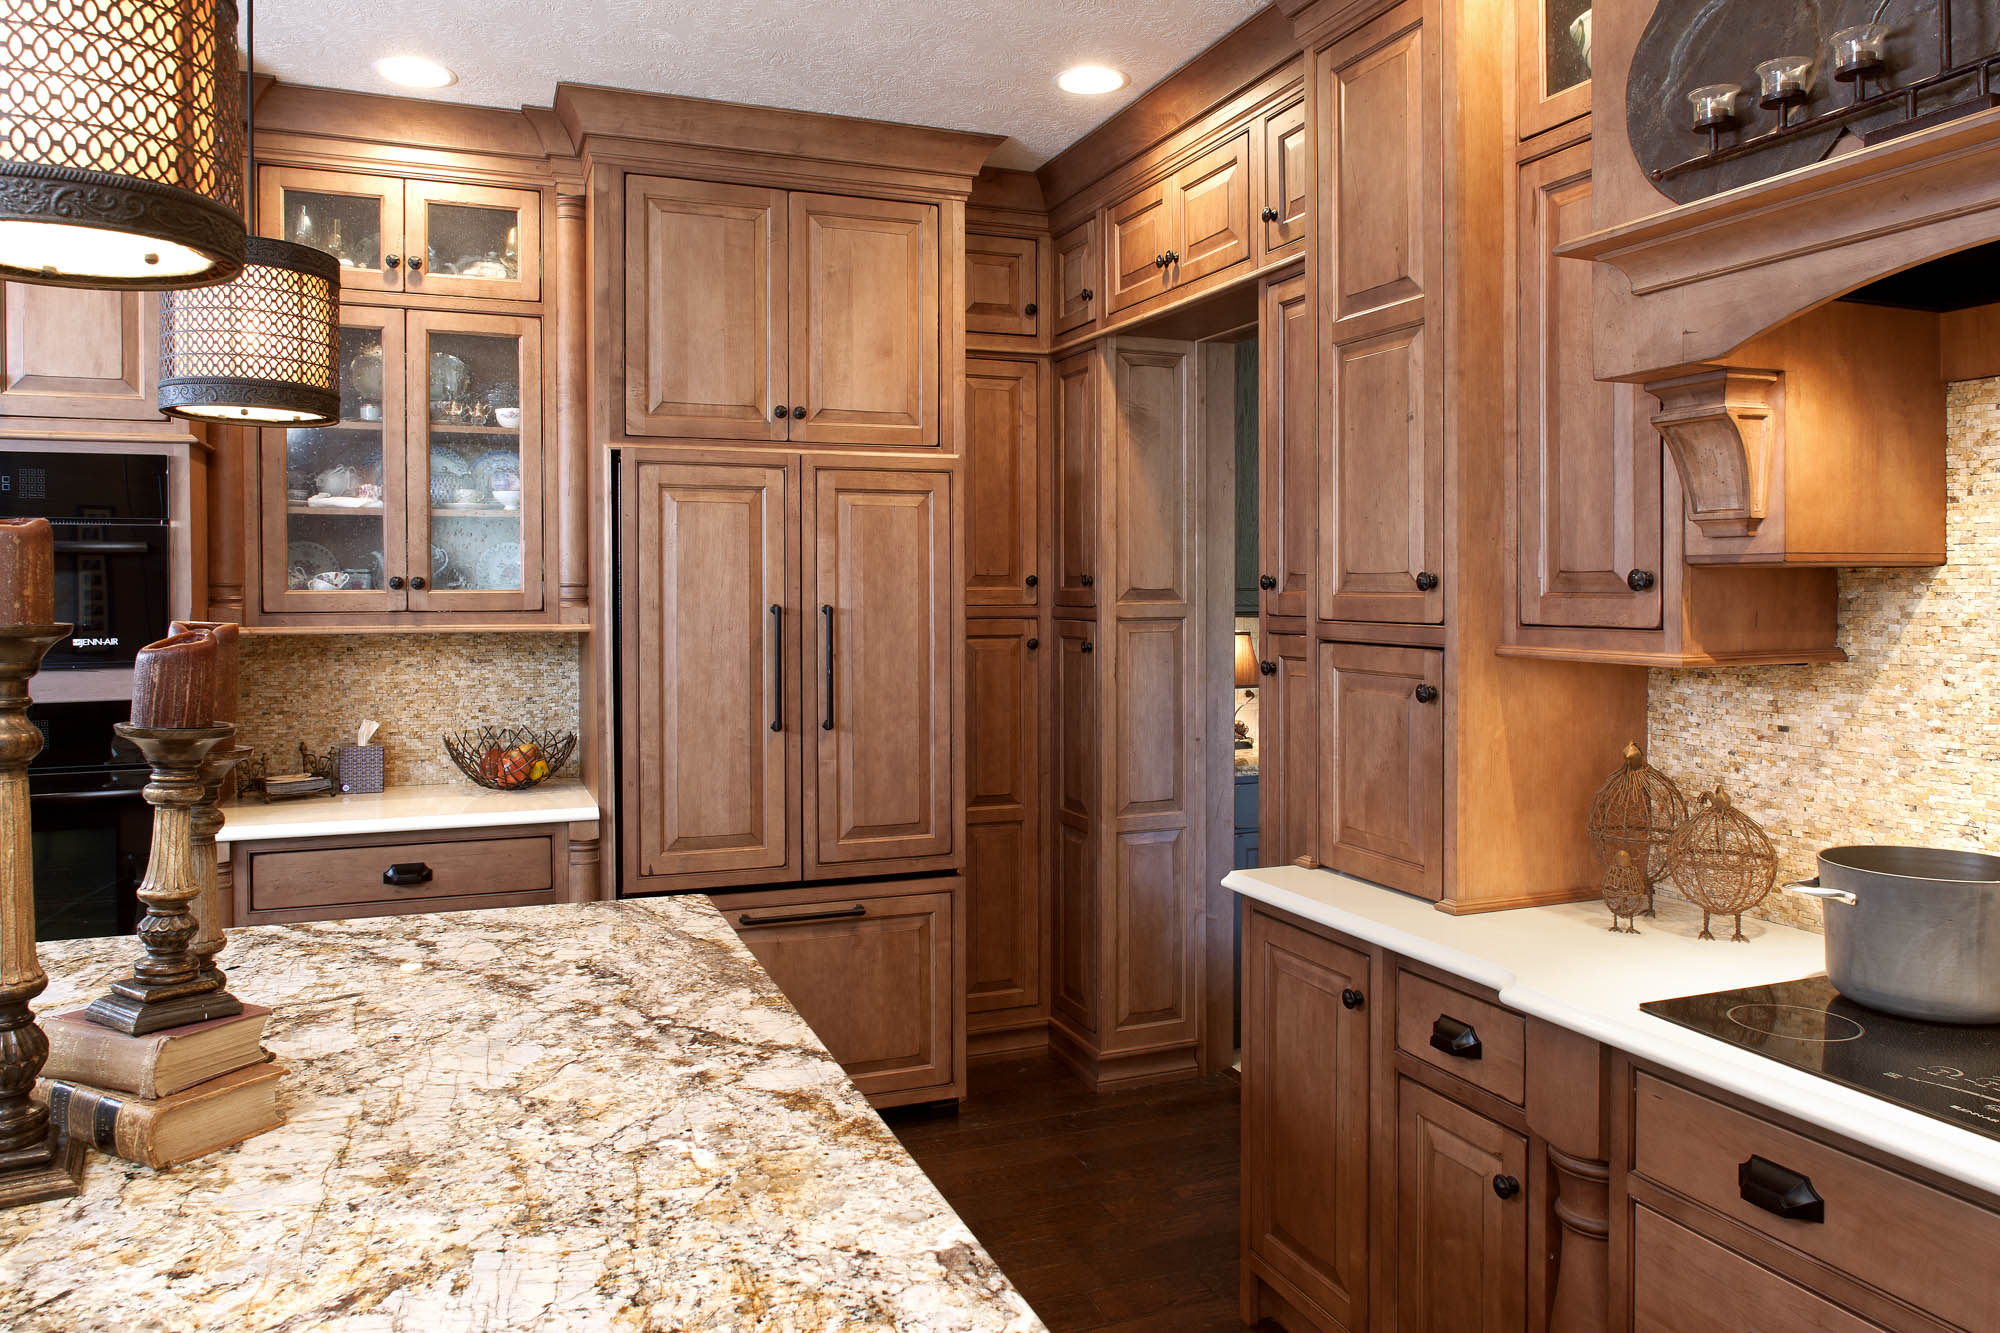 View the accents in this kitchen remodel | Showplace Cabinetry